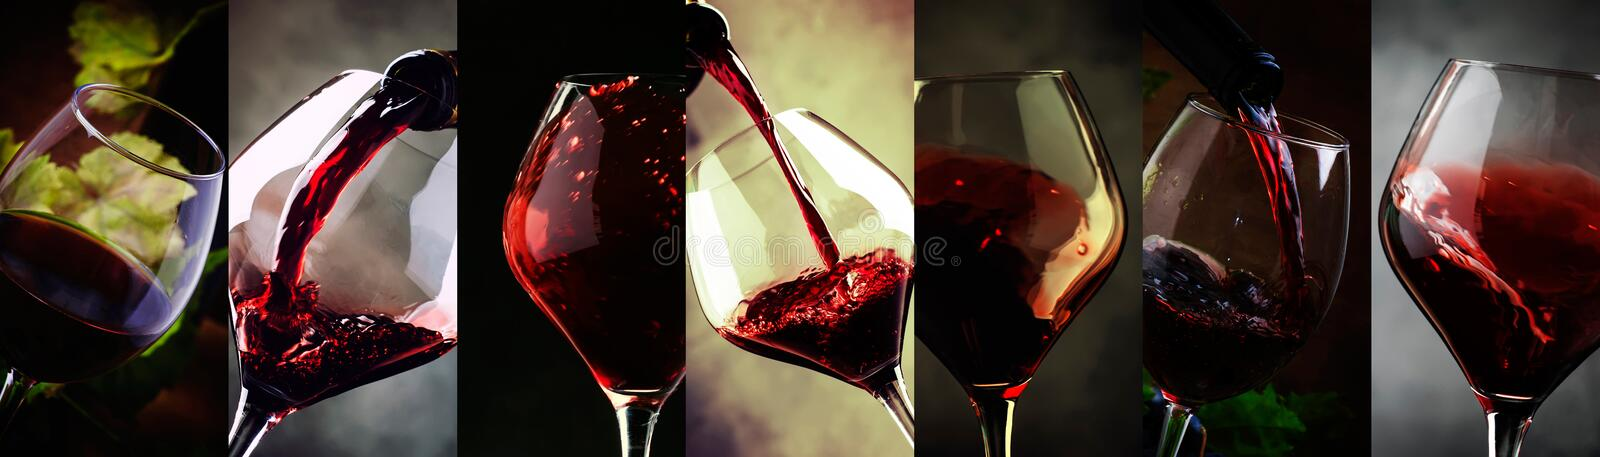 Red wine, alcohol collection in glasses. Wine tasting. Drink background. Close-up, Photo collage stock photo